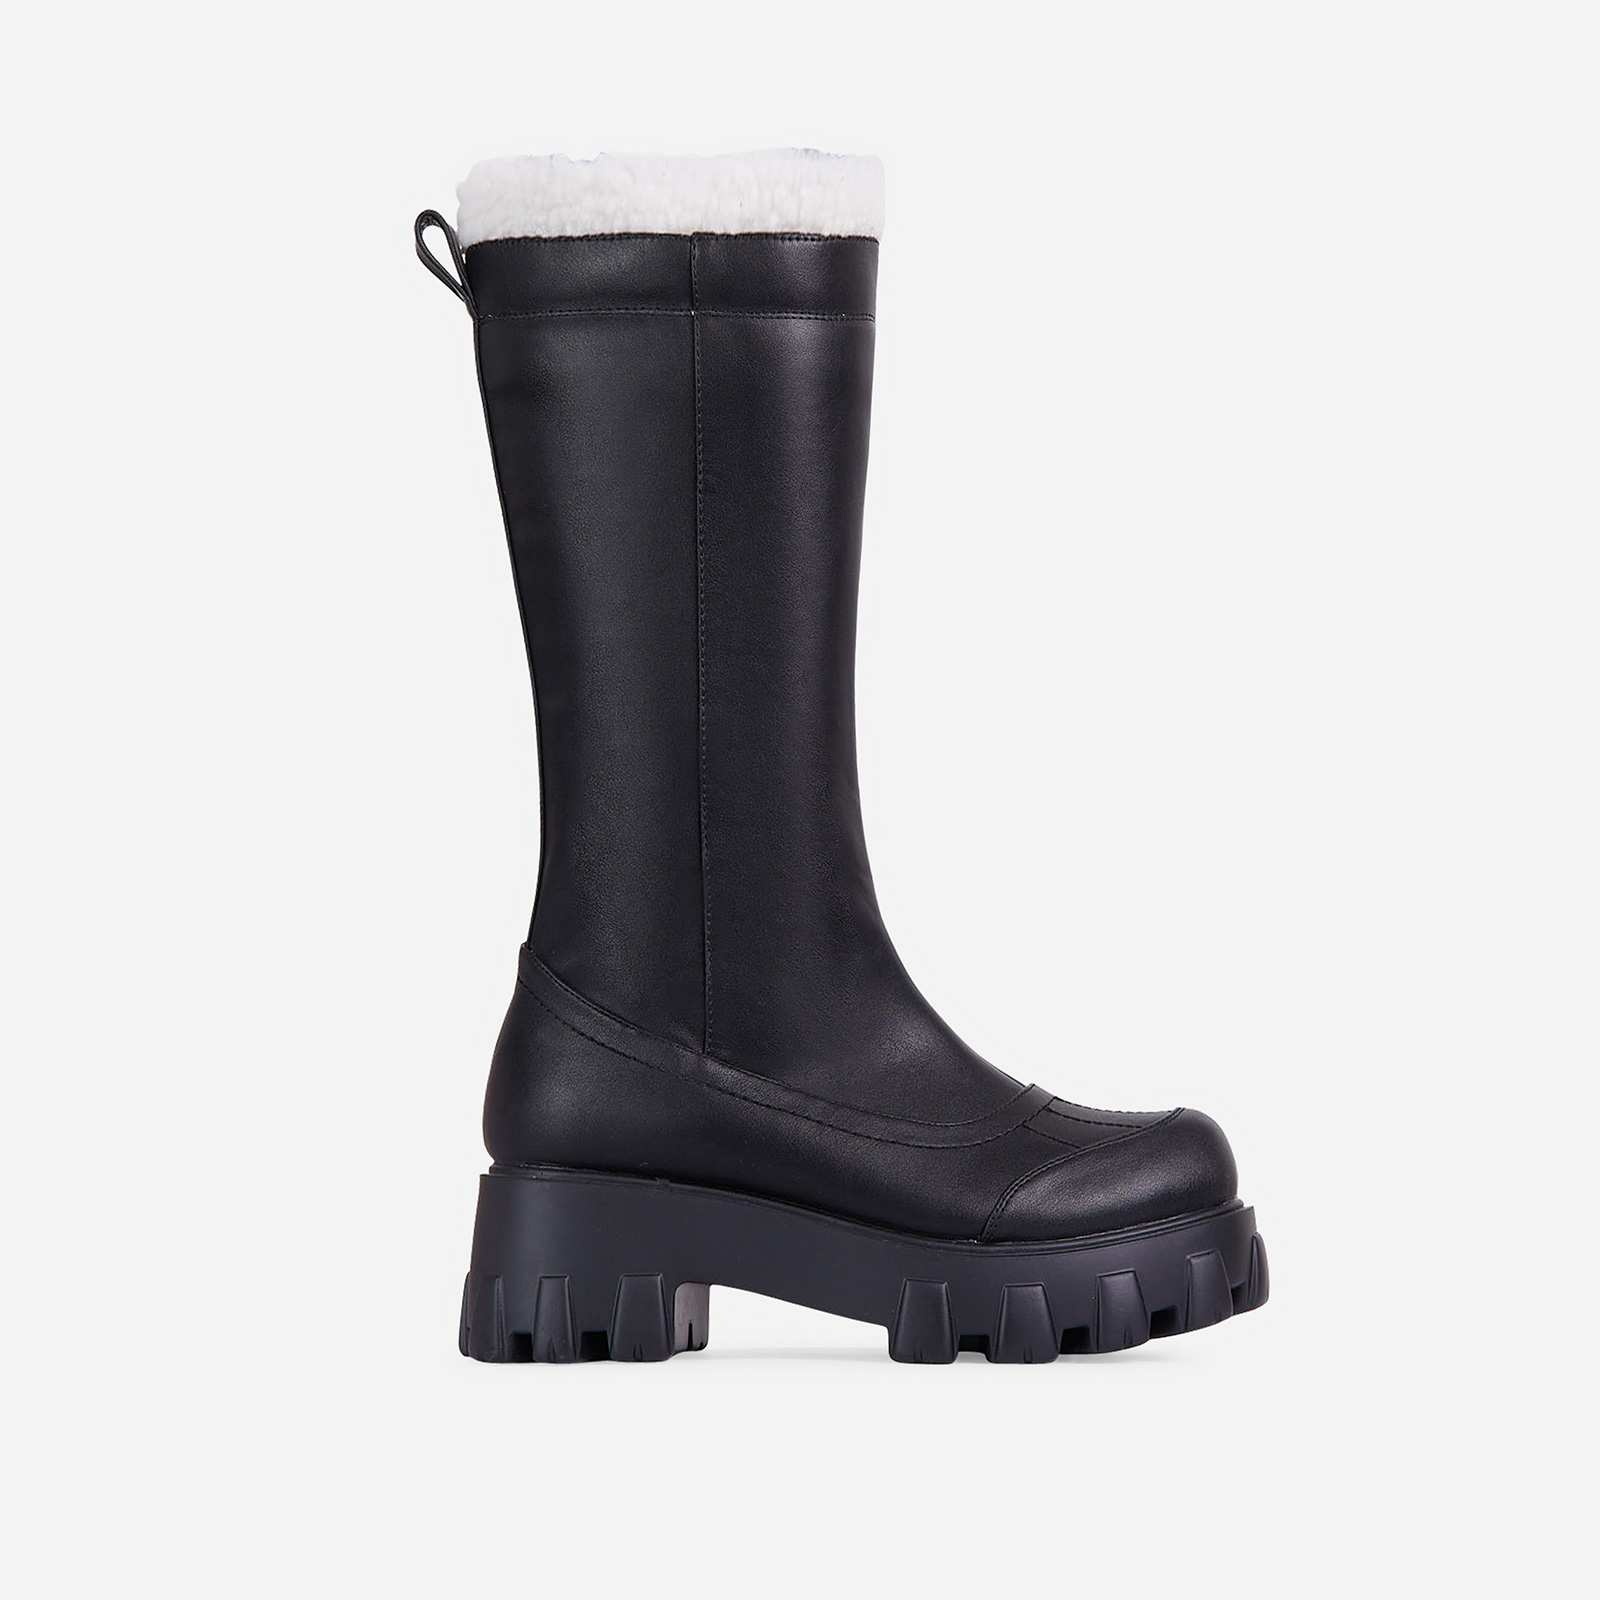 Run-The-World Faux Fur Trim Chunky Sole Knee High Long Wellington Boot In Black Faux Leather